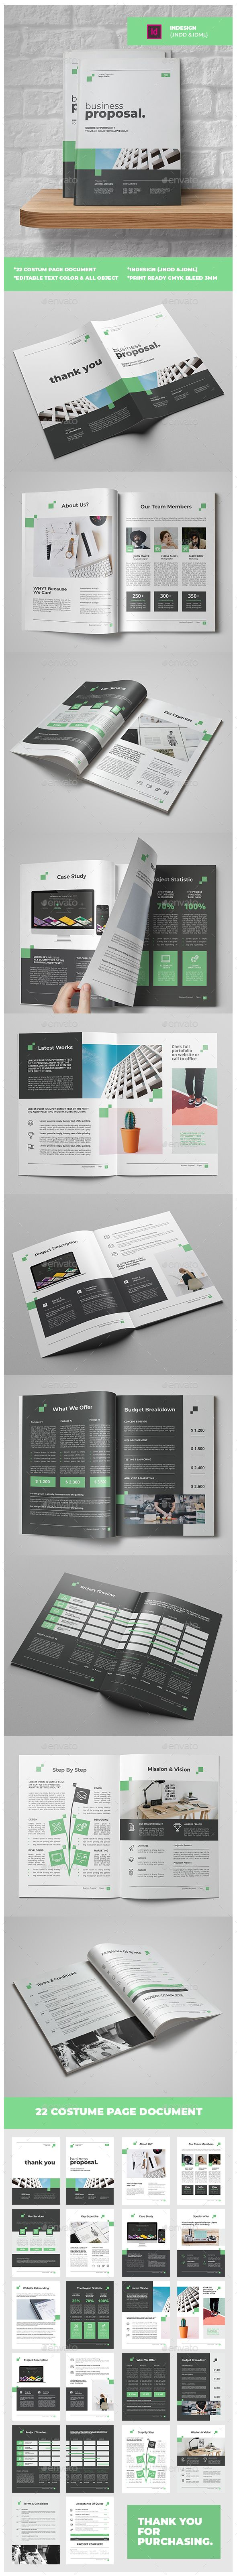 Busiines Proposal Brochure Template InDesign INDD O 22 Custom Pages Document Premade Cover Design Print Ready CMYK 300 Dpi All Editable Text